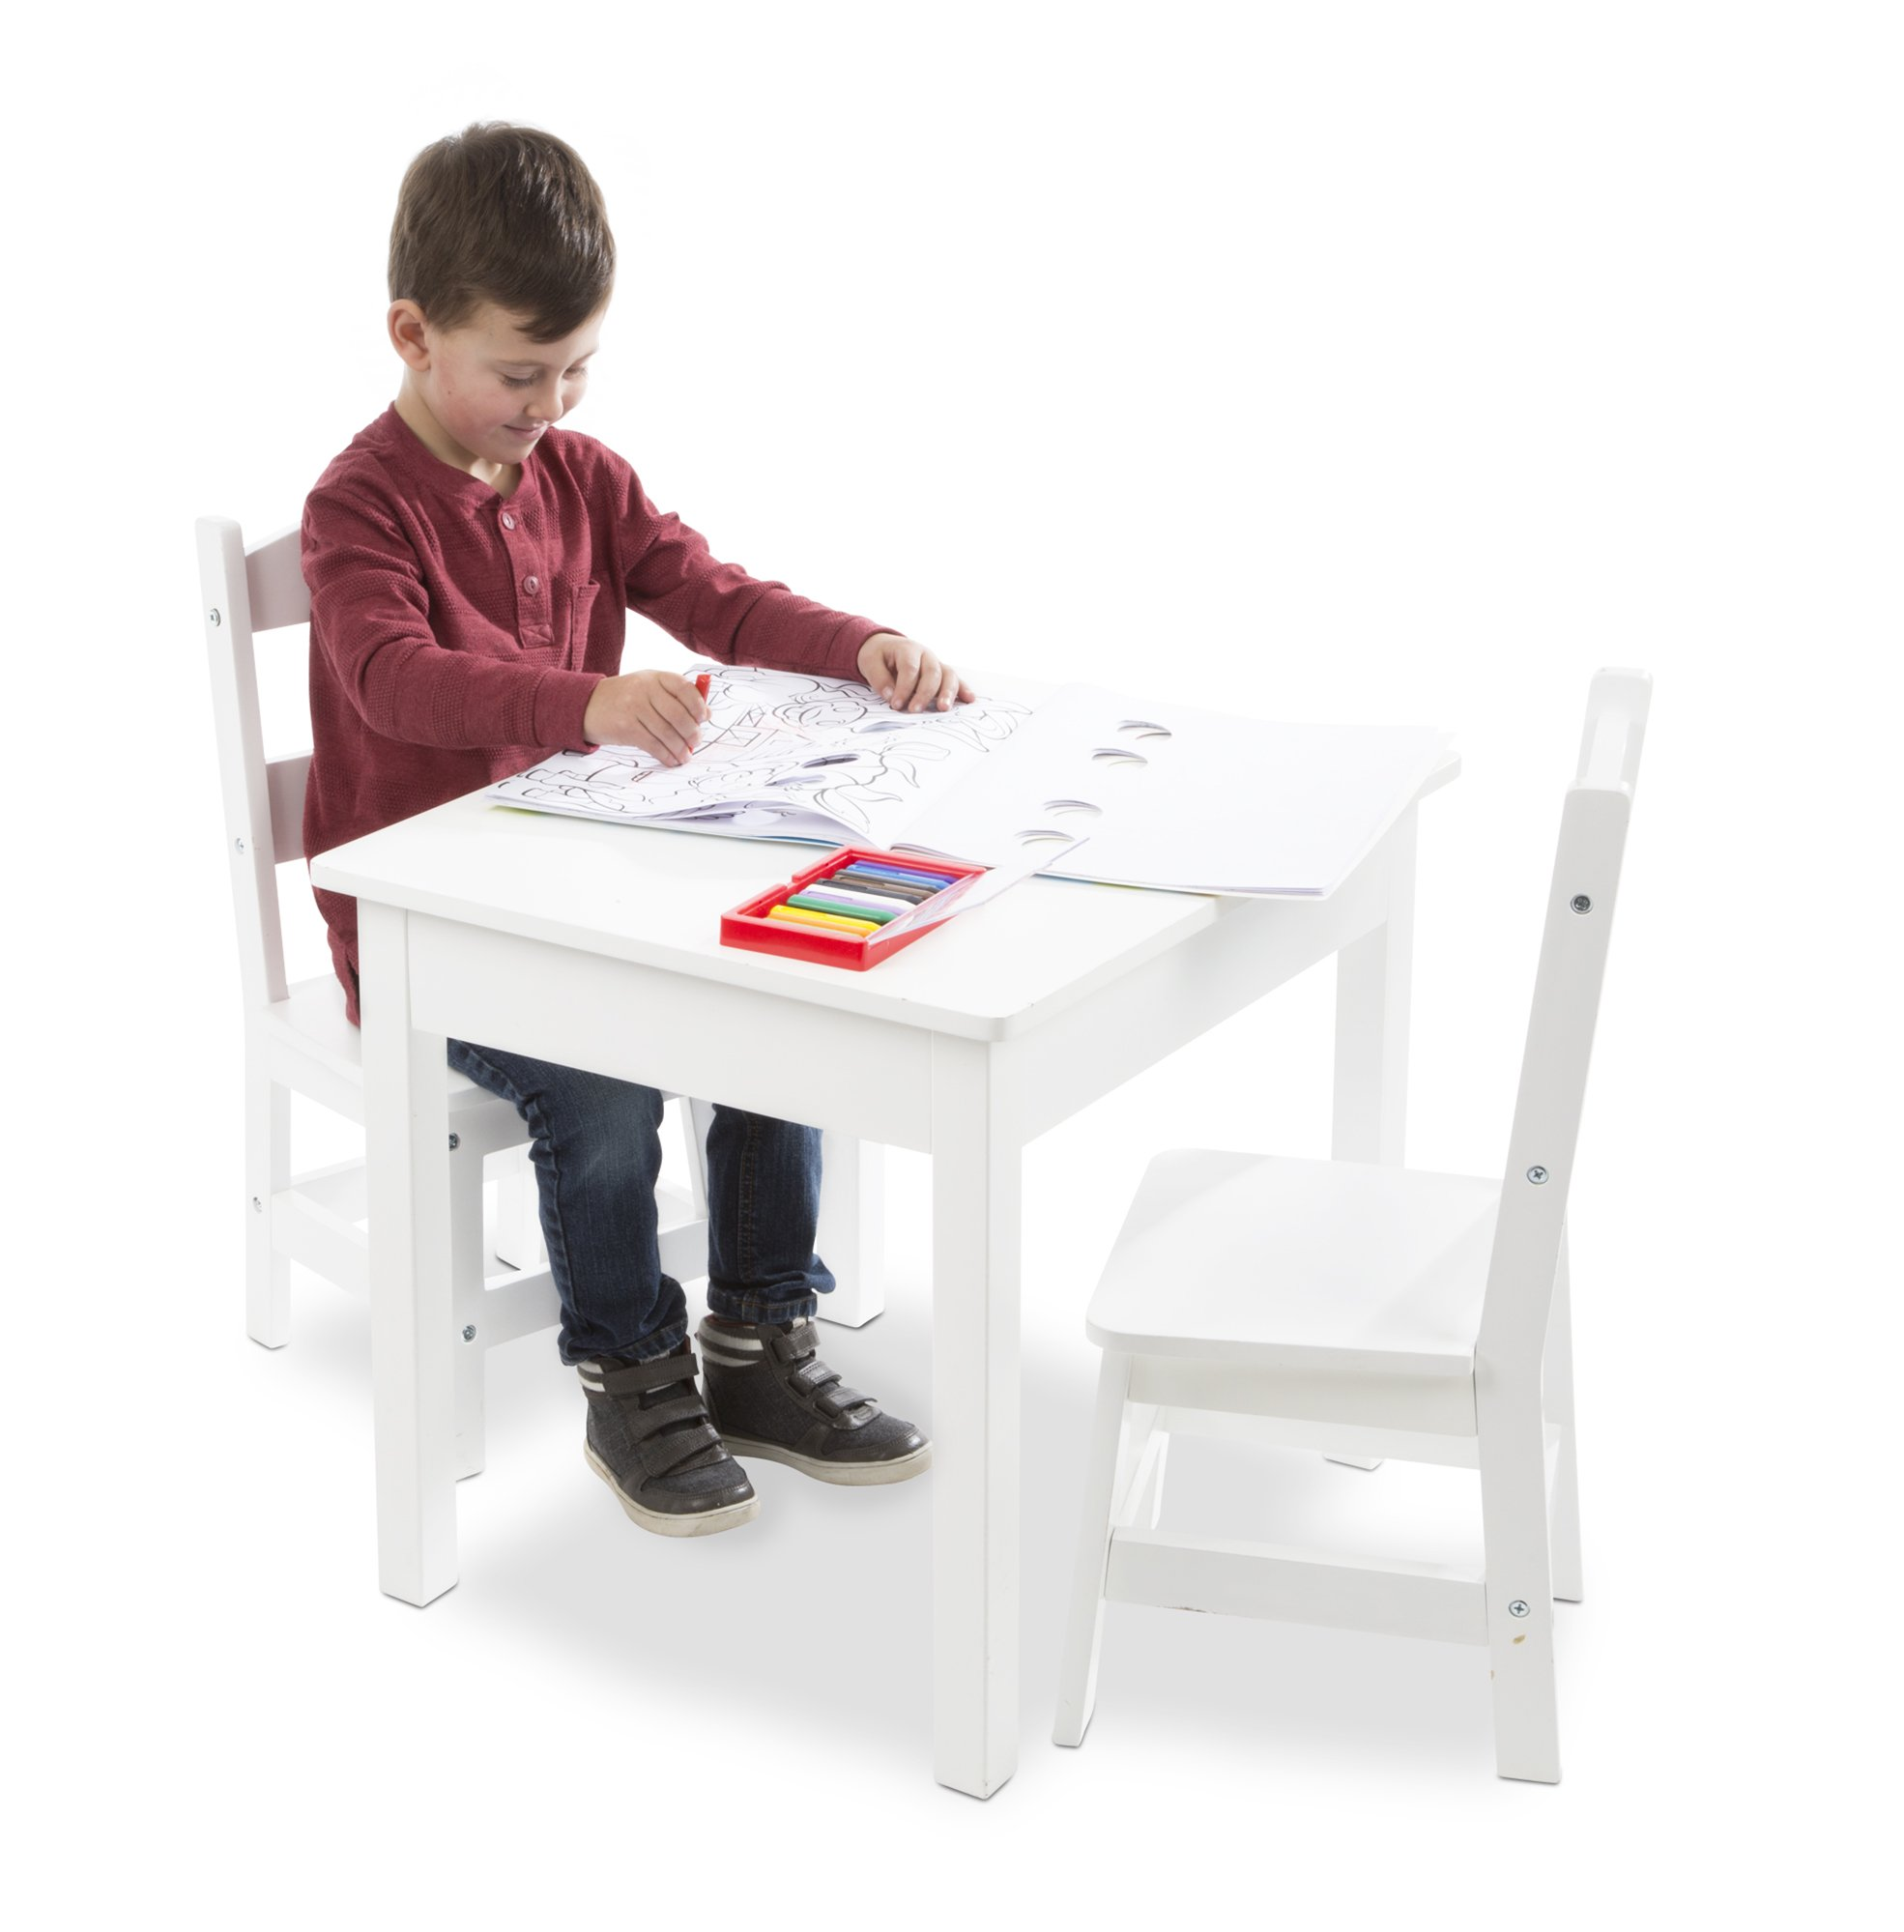 Melissa & Doug Table & Chair - Painted White Children's Furniture by Melissa & Doug (Image #2)